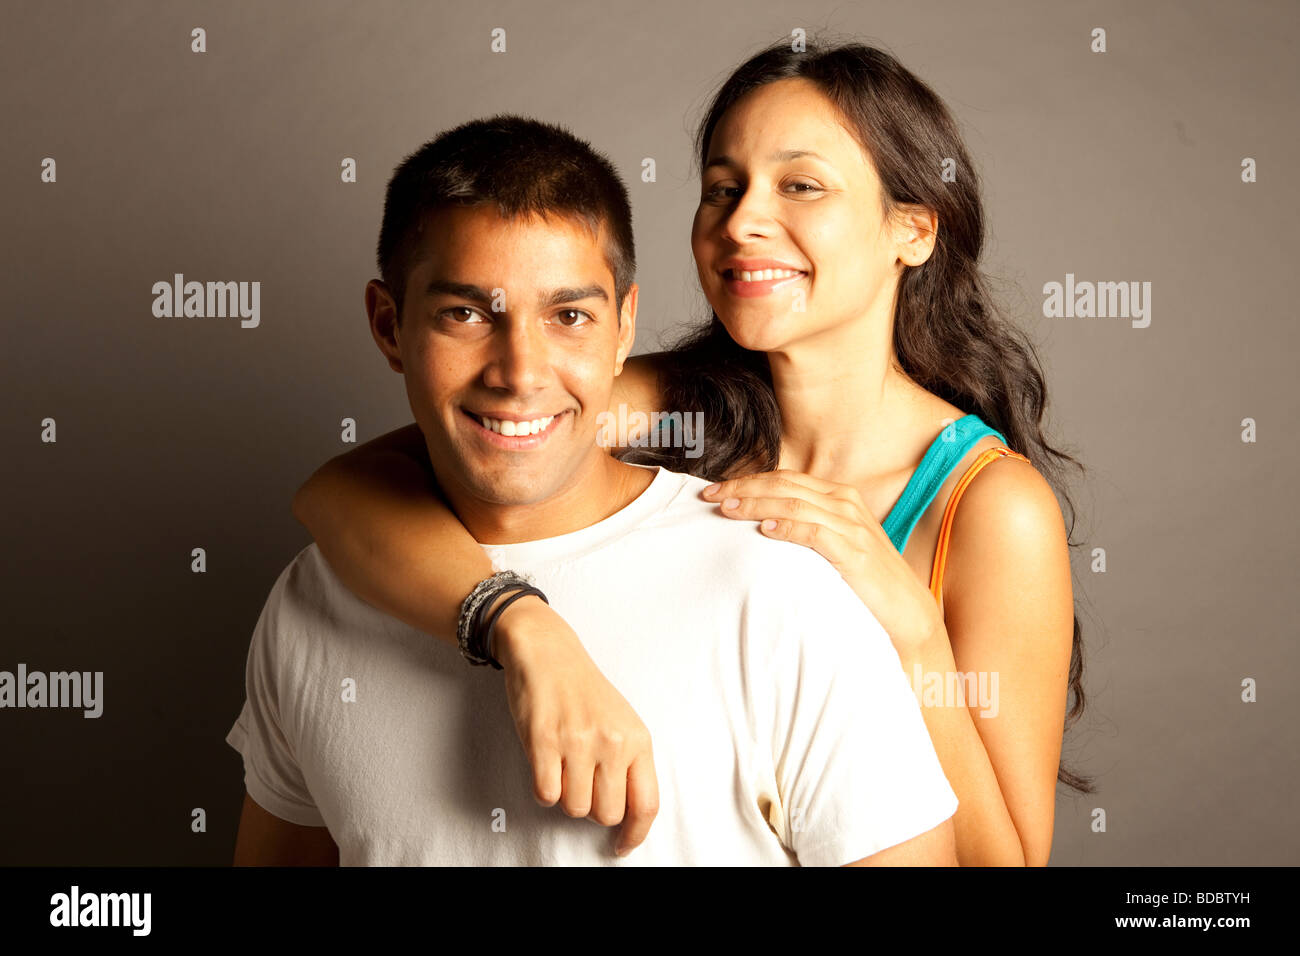 Male female couple posing together in studio in front of a neutral colored seamless. - Stock Image